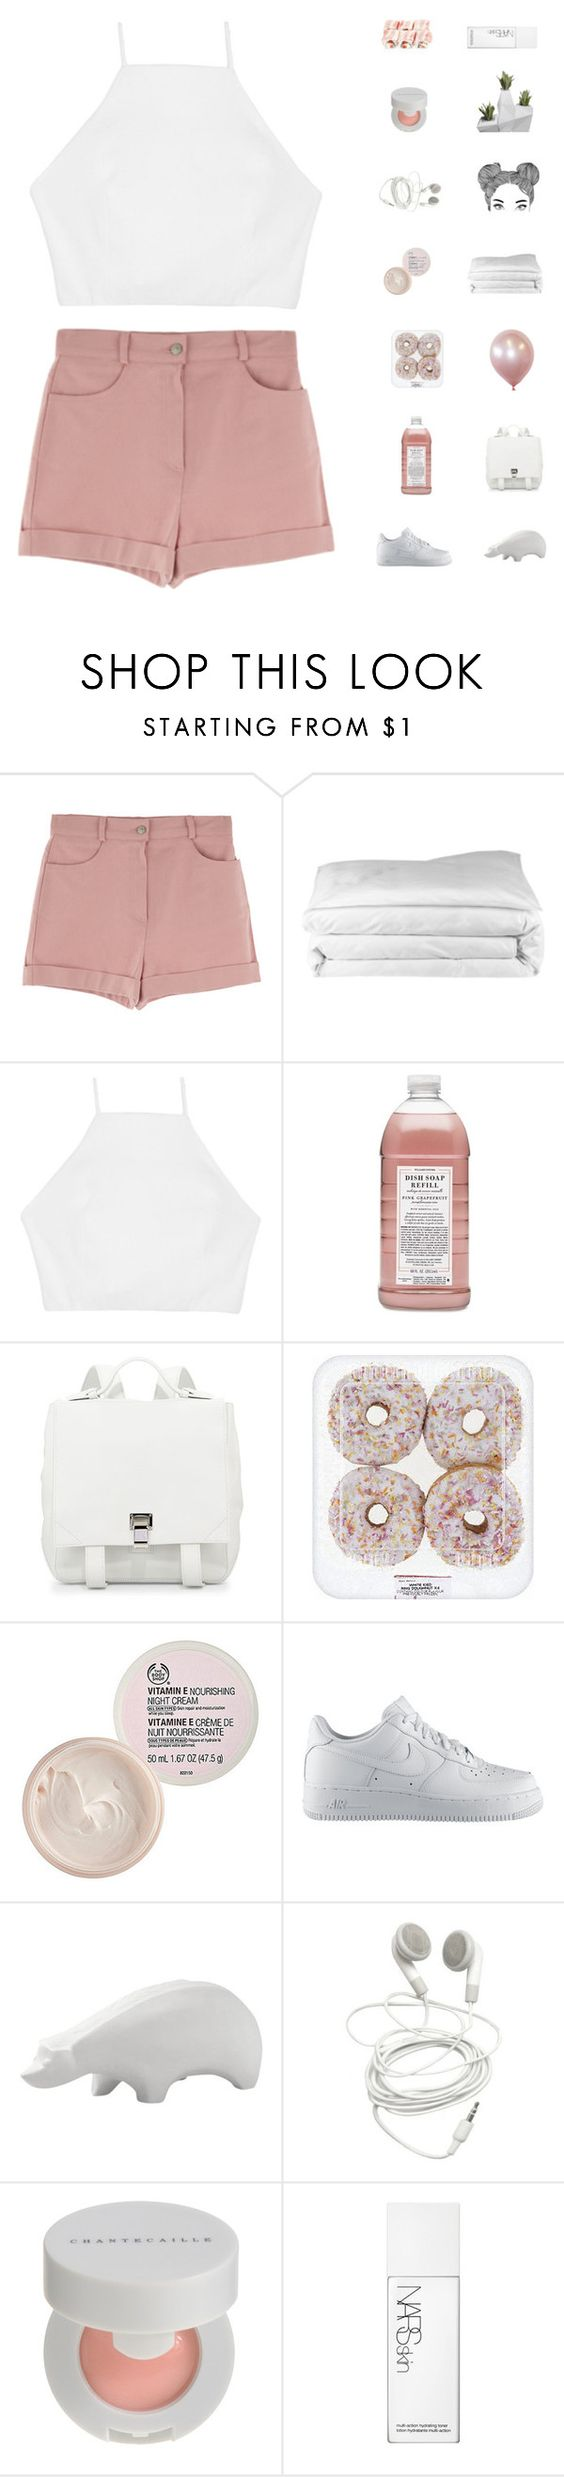 """""""Sixteen"""" by rbalogun ❤ liked on Polyvore featuring Frette, rag & bone, Williams-Sonoma, Proenza Schouler, The Body Shop, NIKE, Jonathan Adler, Chantecaille and NARS Cosmetics"""